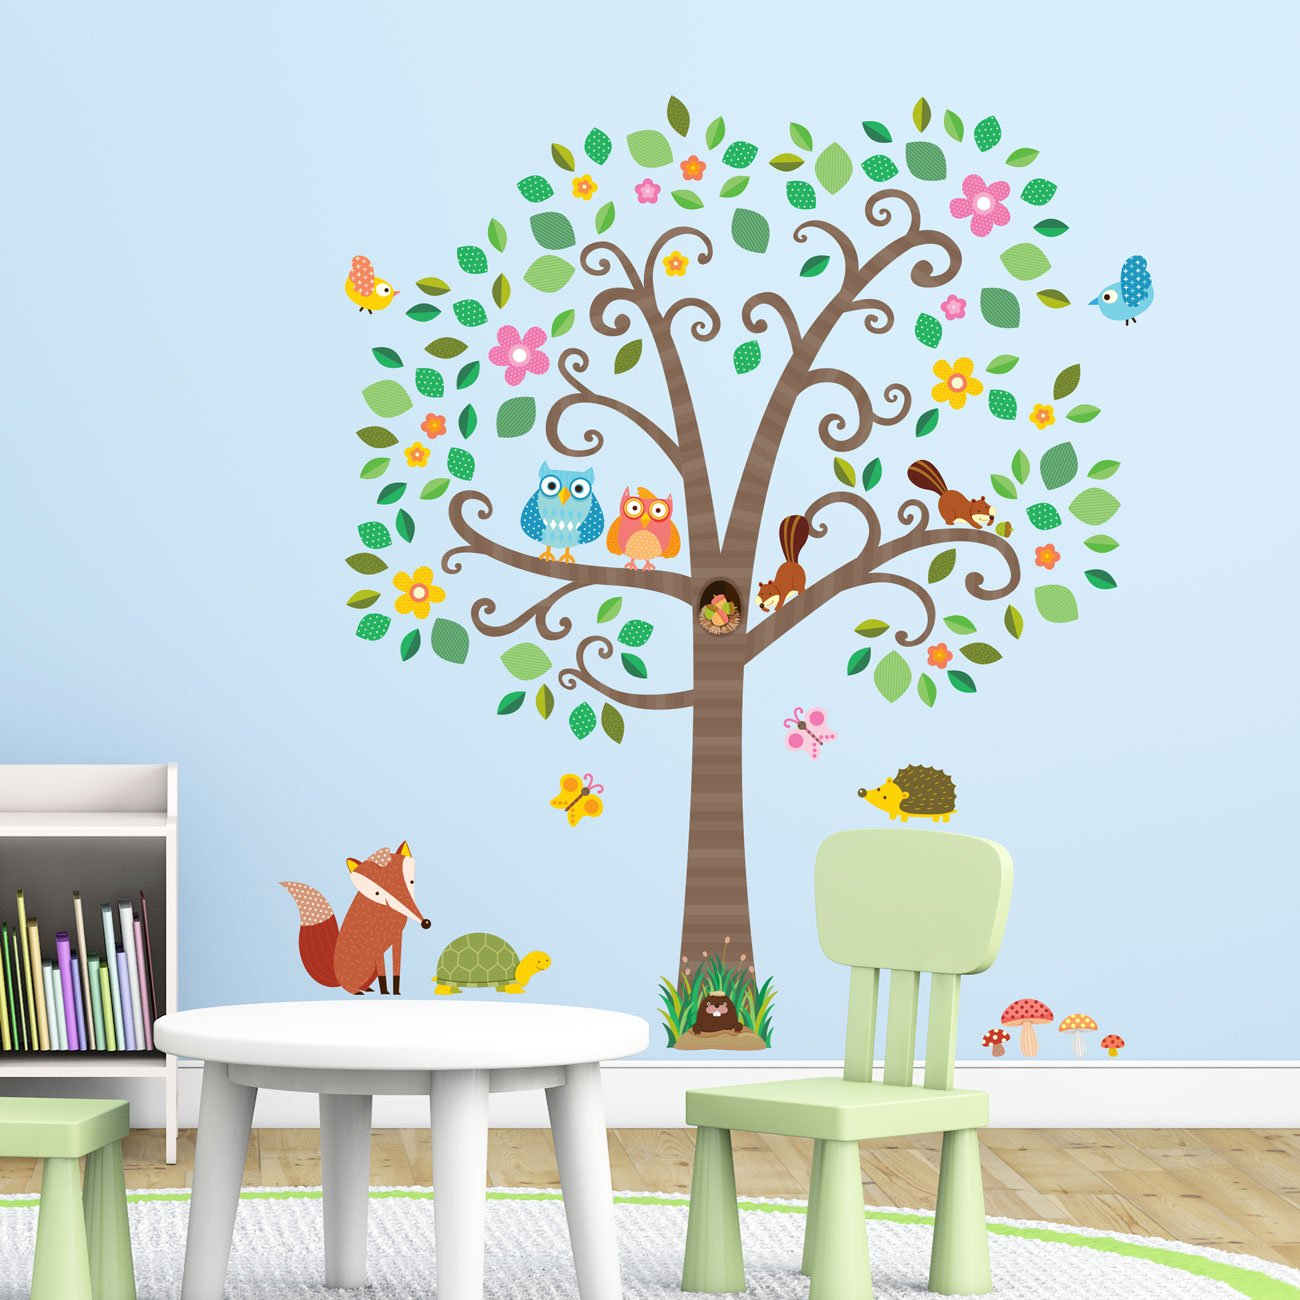 Decowall DA-1502N Large Scroll Tree and Animals Kids Wall Stickers Wall Decals Peel and Stick Removable Wall Stickers for Kids Nursery Bedroom Living Room